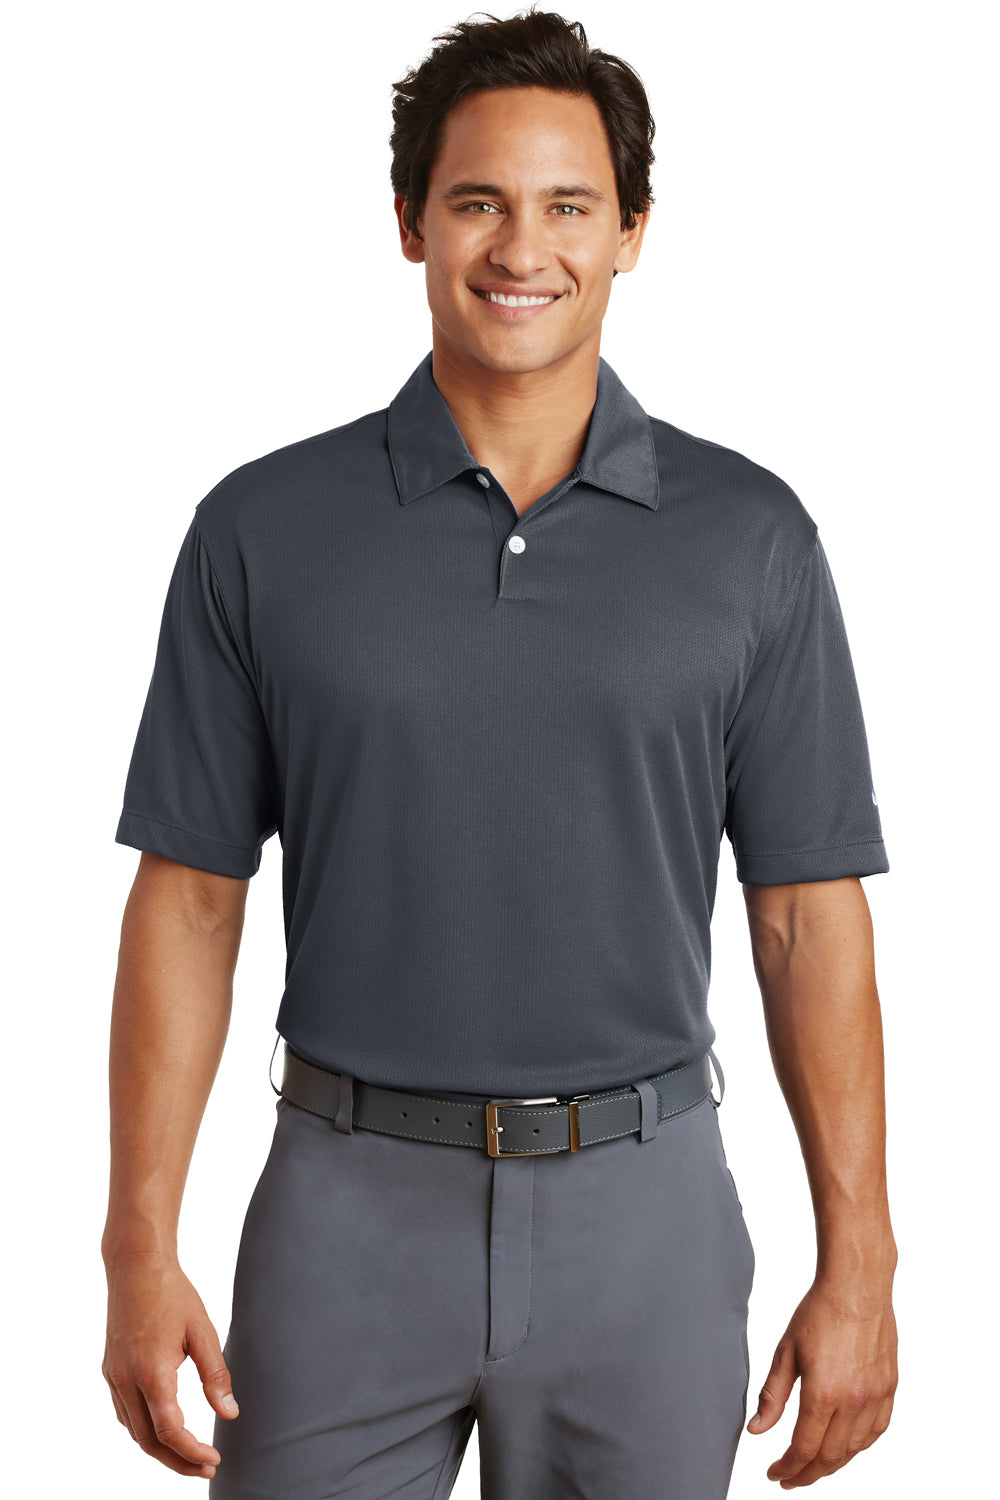 Nike 373749 Mens Dri-Fit Moisture Wicking Short Sleeve Polo Shirt Dark Grey Front